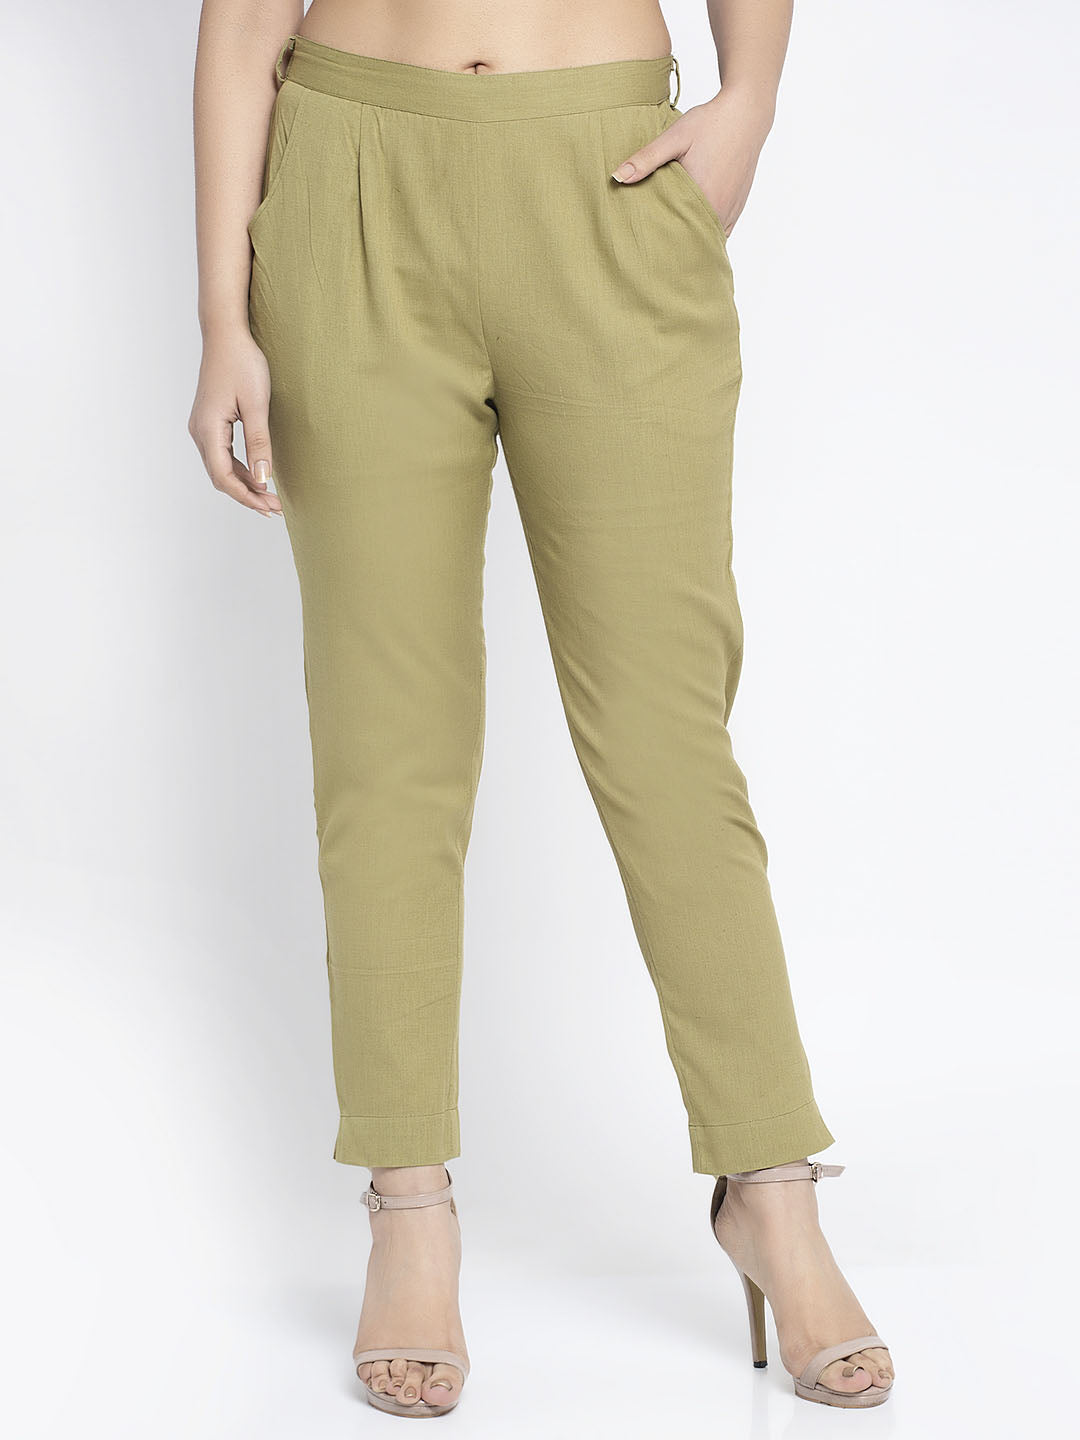 Aujjessa Olive Green Cotton Trousers